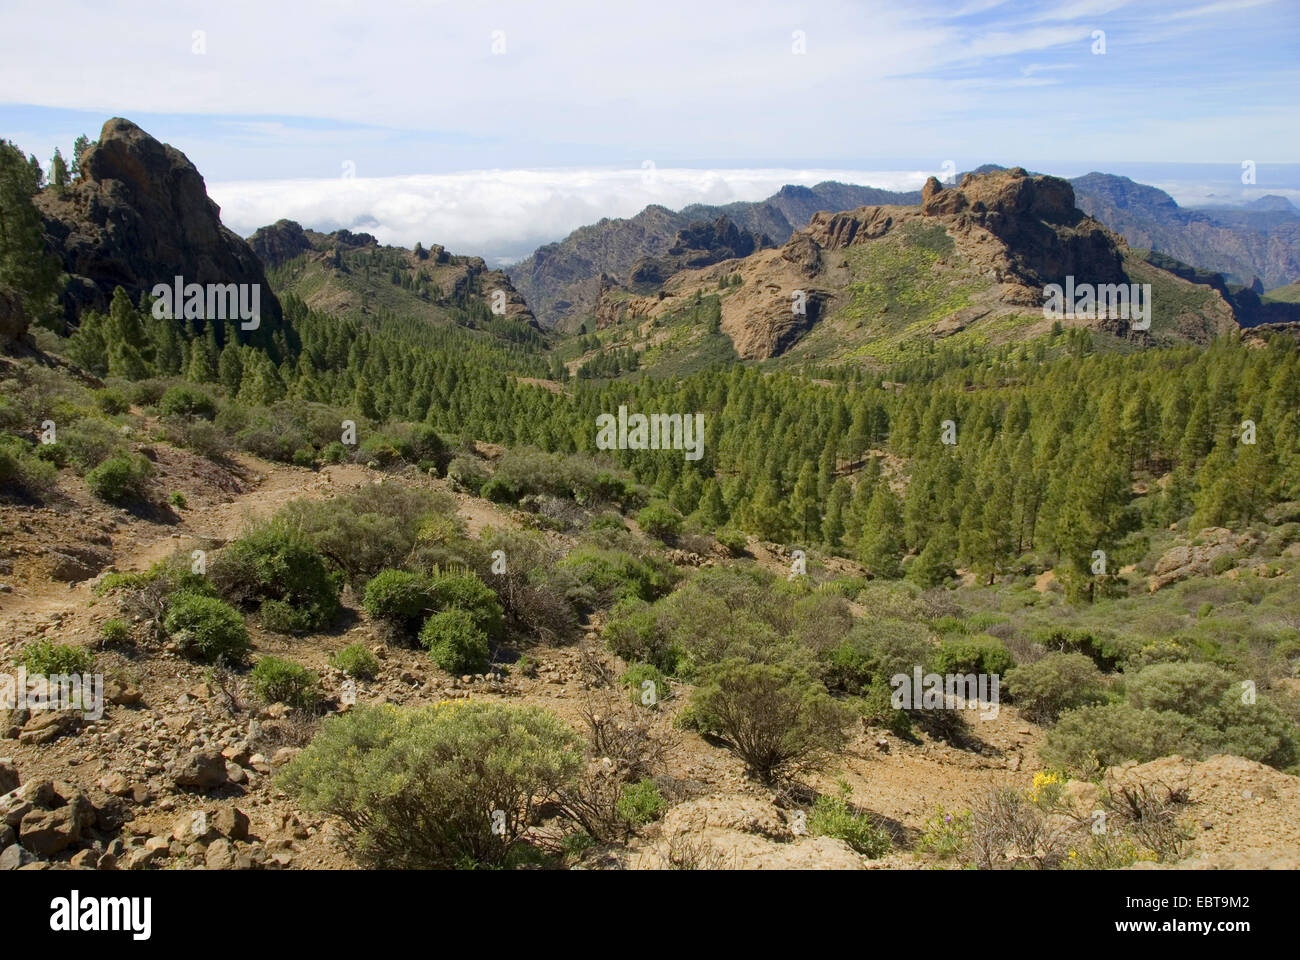 view from the rock tower 'Roque Nublo' (cloud rock), landmark of the island, to the South, Canary Islands, Gran Stock Photo